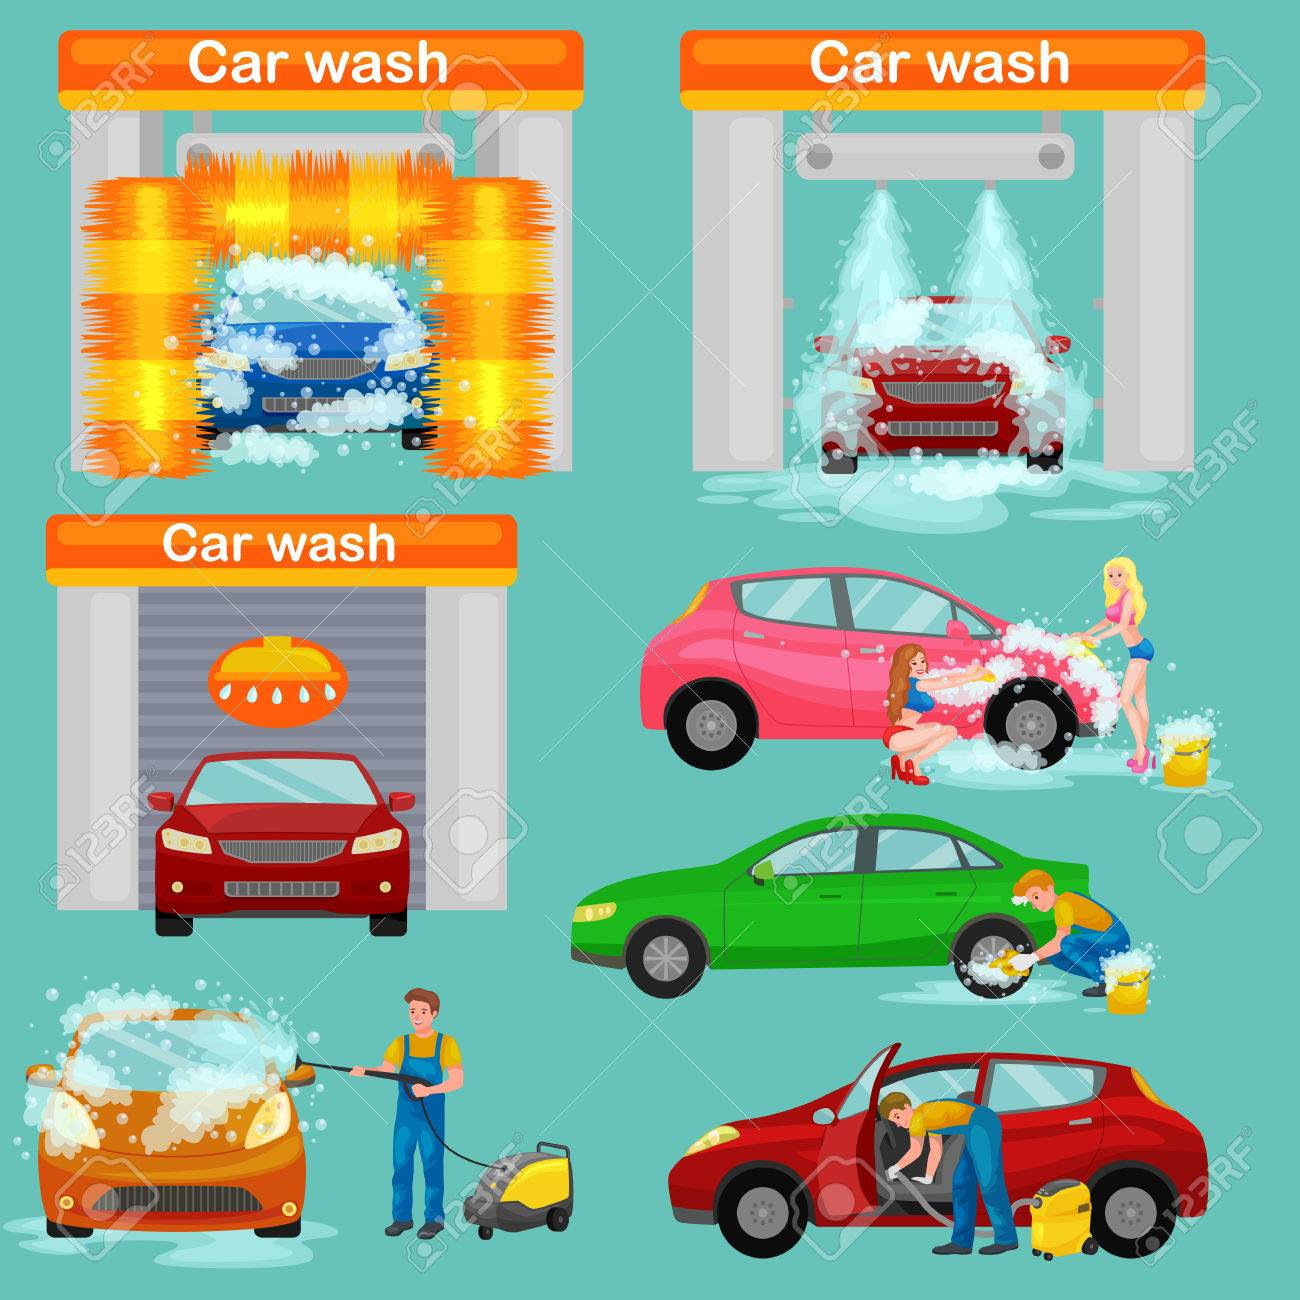 car wash services, auto cleaning with water and soap, car interior. - 63388249